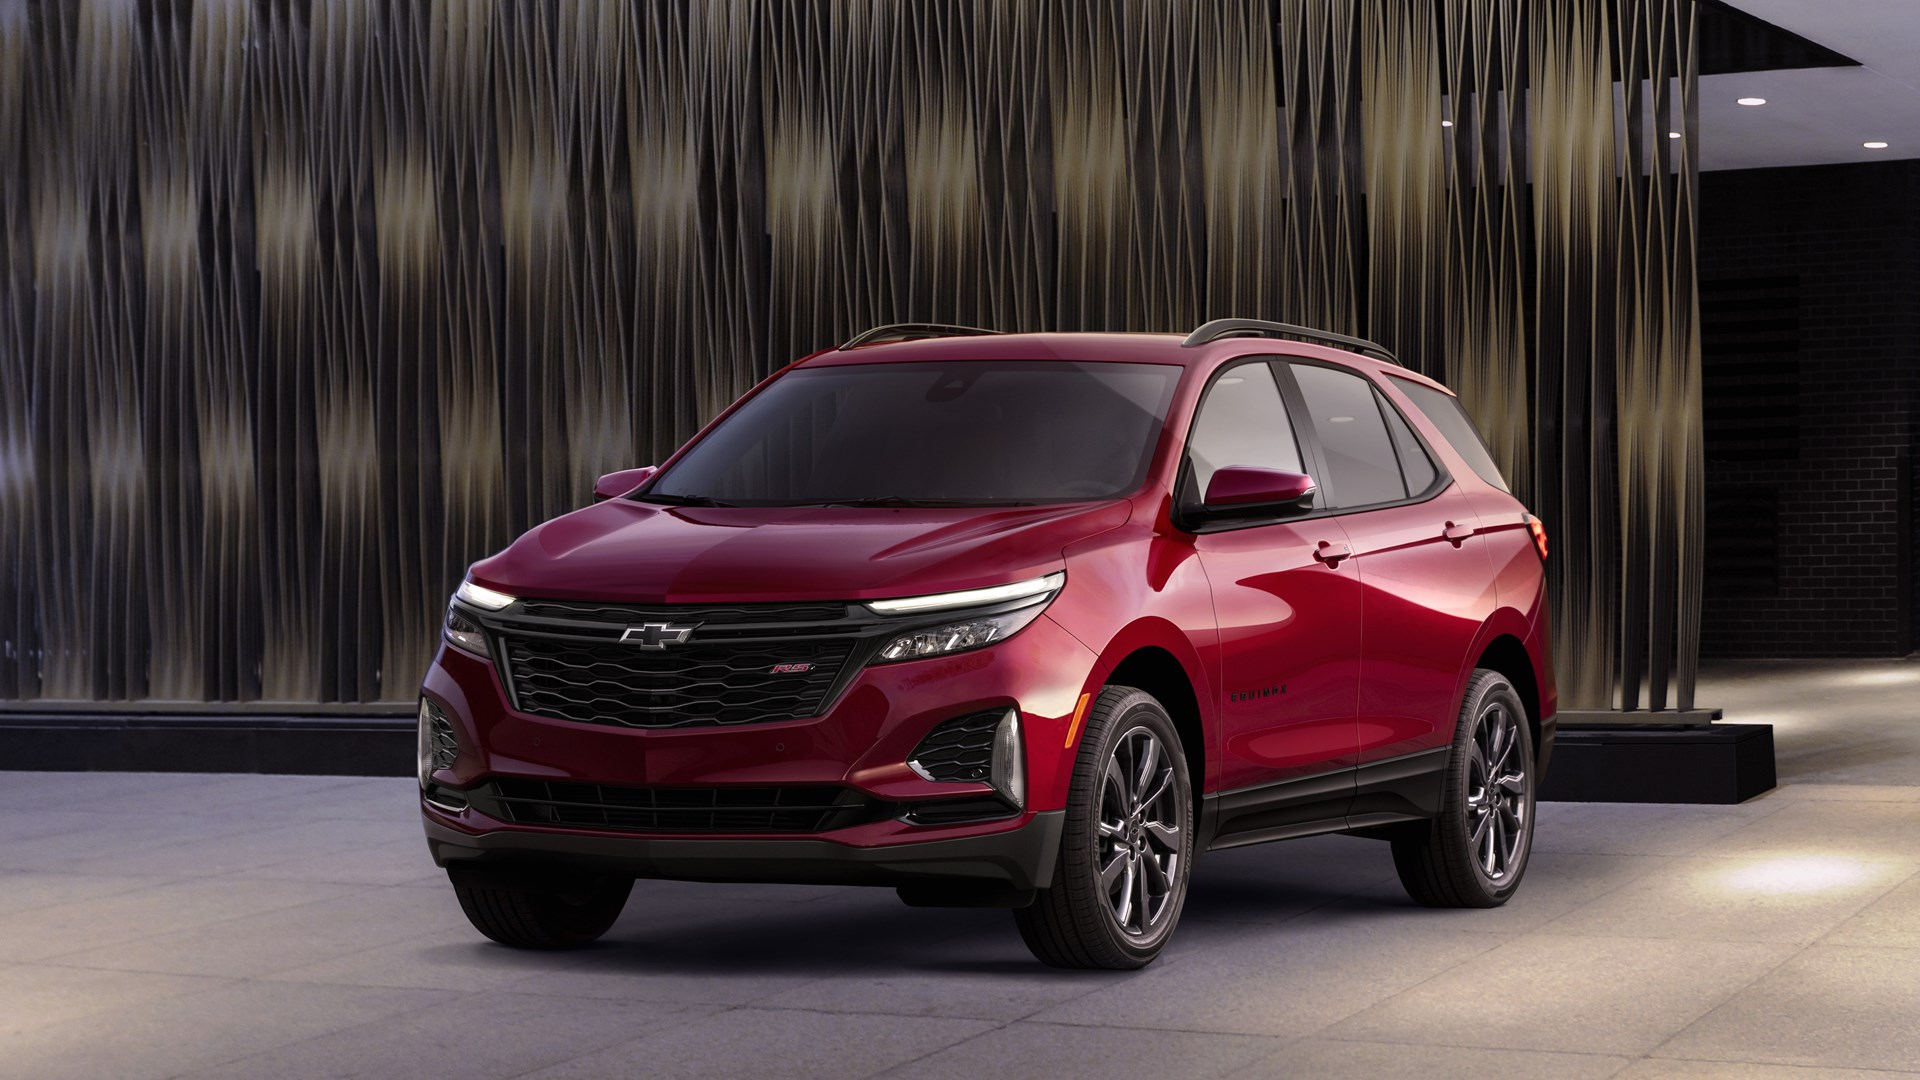 2021 Chevy Equinox Gets Facelift And New Rs Trim   Autotrader.ca 2021 Chevy Equinox Premier Near Me, New, Options